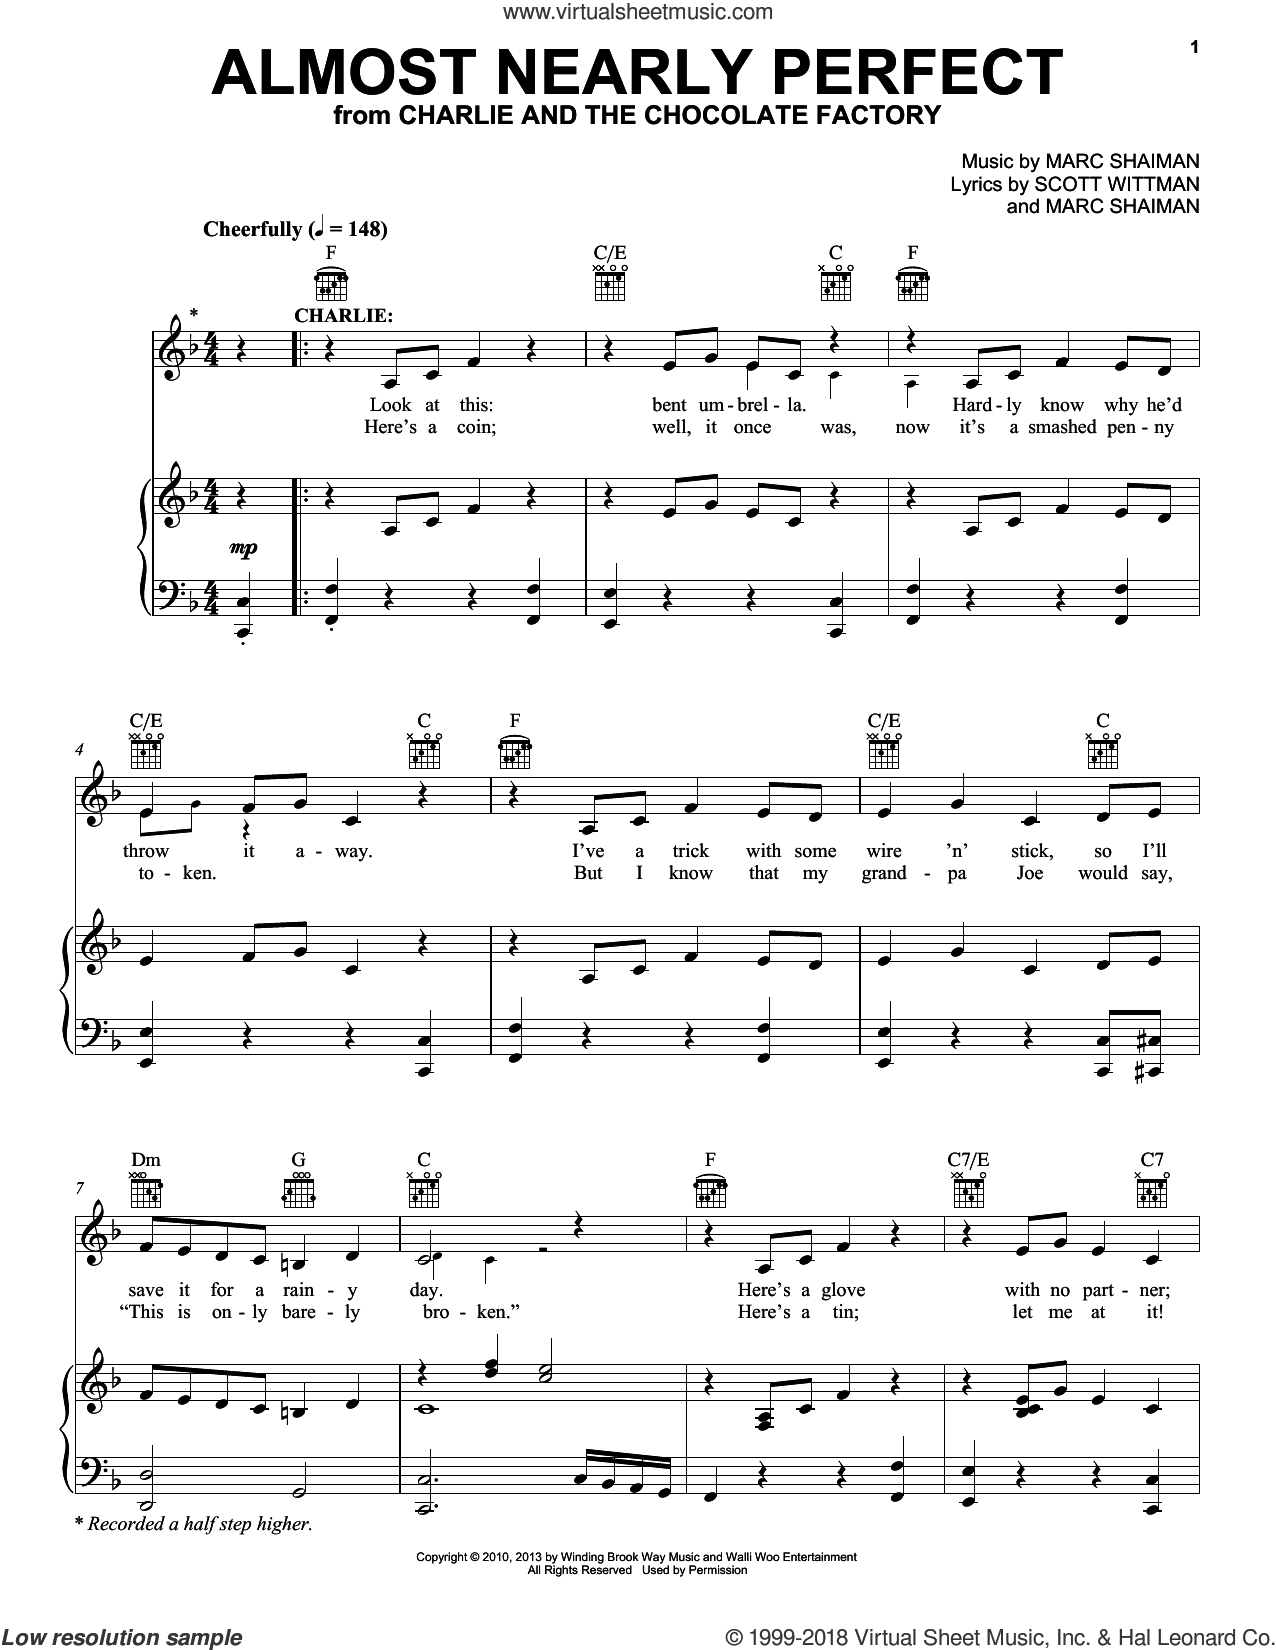 Almost Nearly Perfect sheet music for voice, piano or guitar by Marc Shaiman & Scott Wittman, Marc Shaiman and Scott Wittman, intermediate skill level